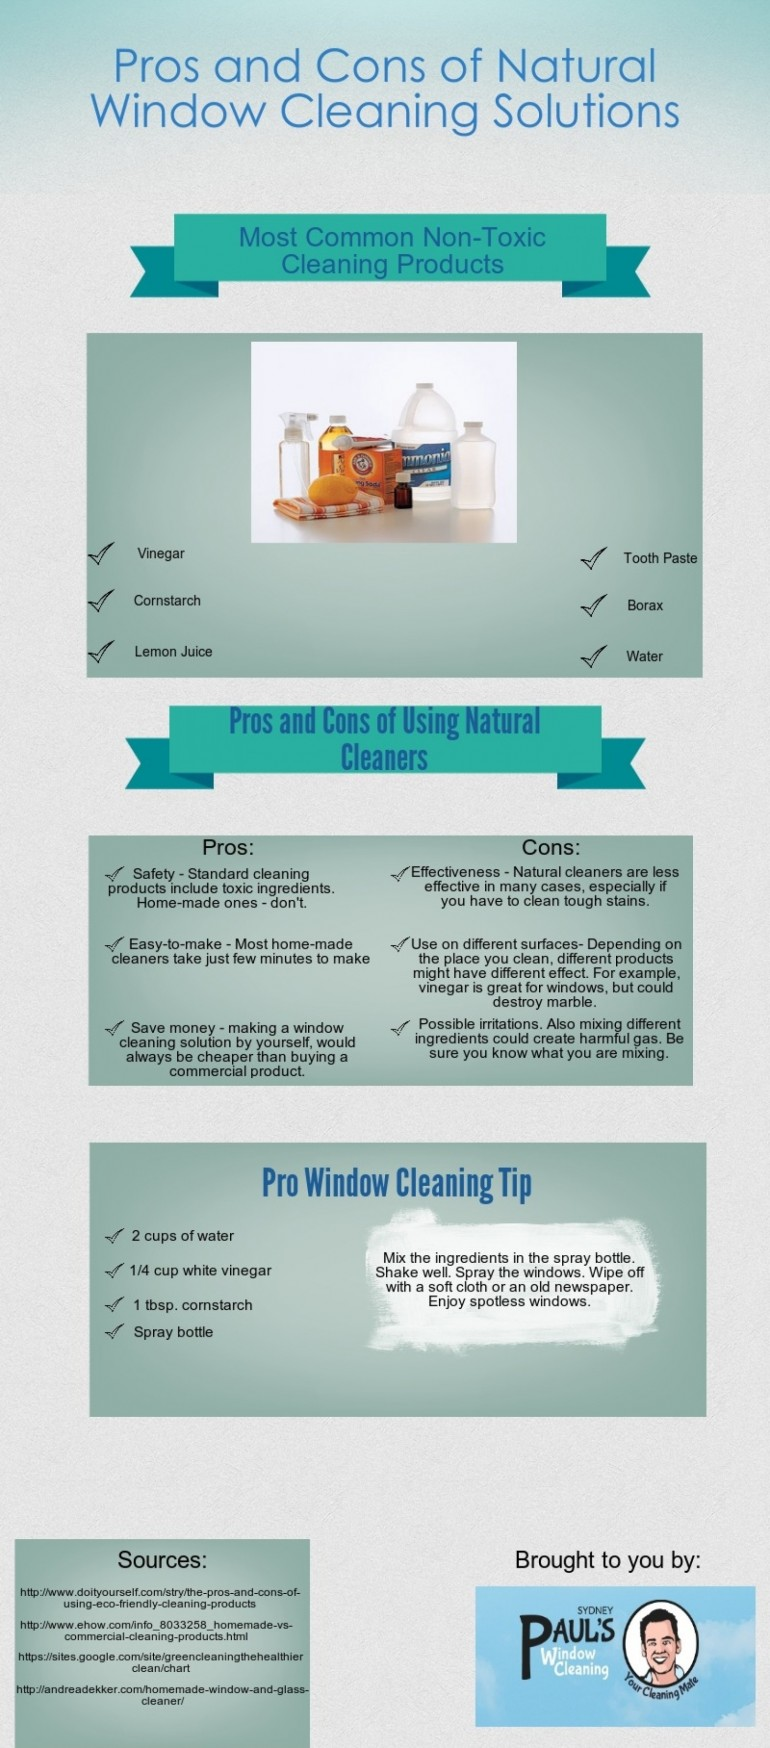 This infographic will help you learn about the positive and negative sides of using green soluti ...